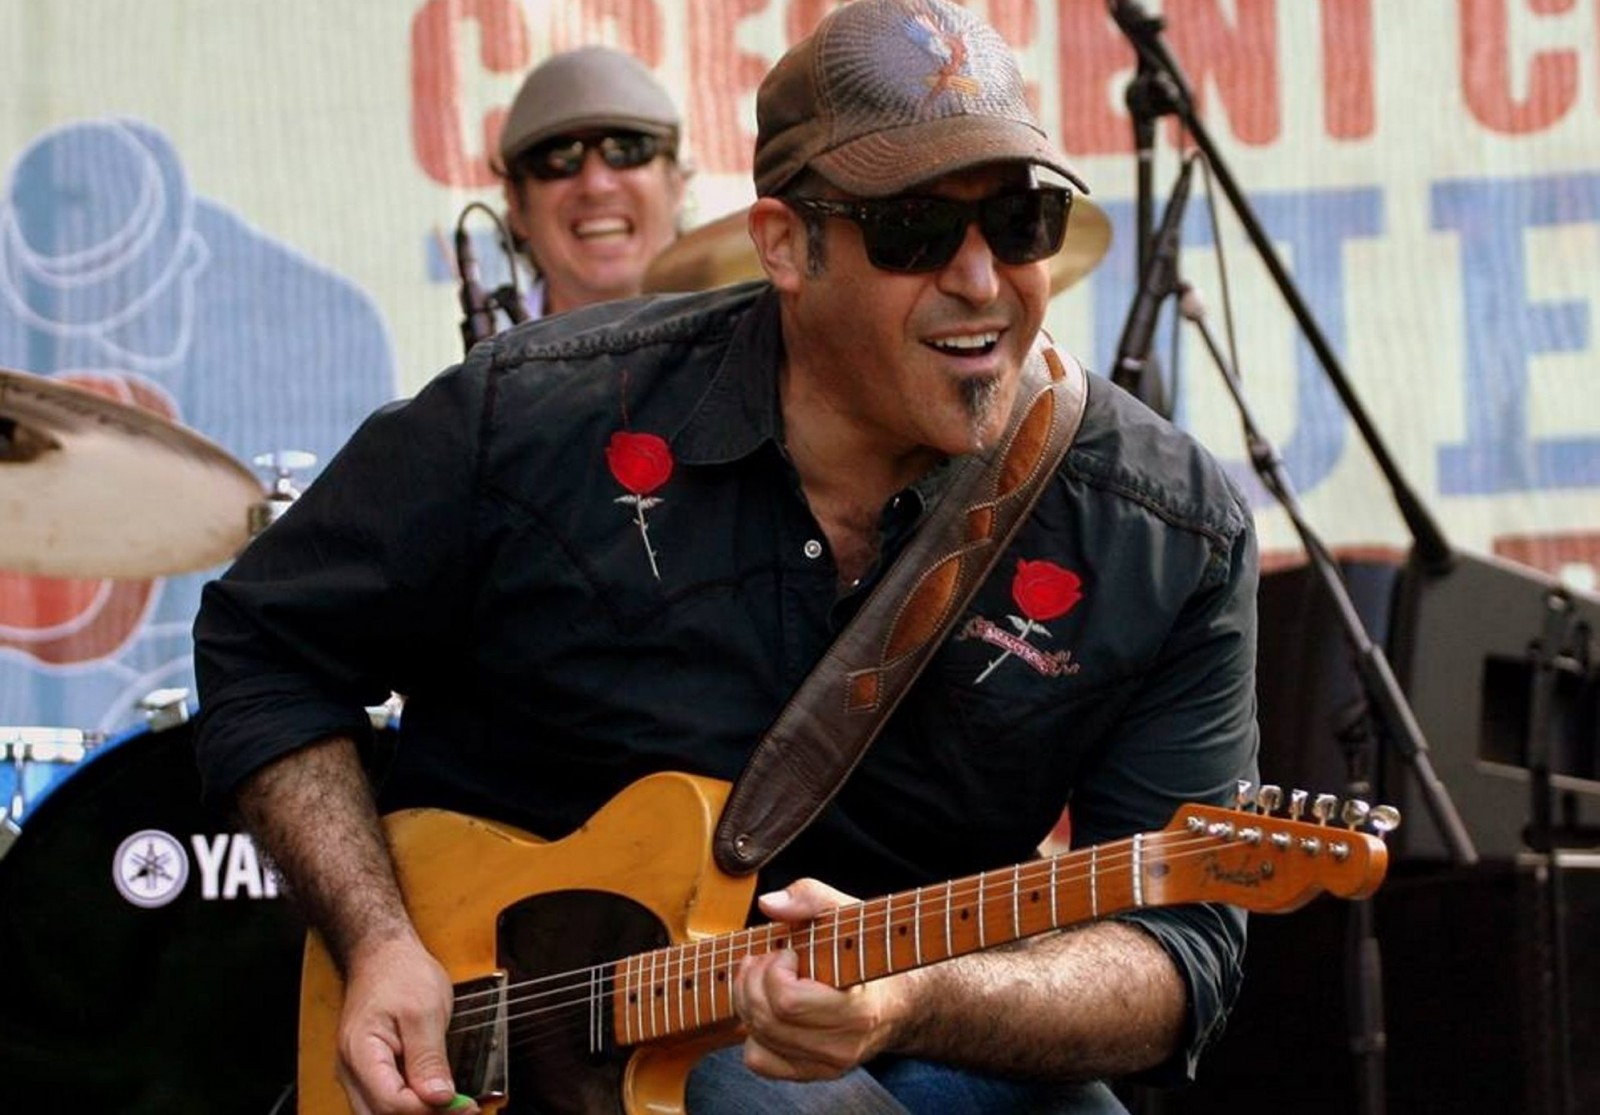 Marc Stone and his band will be joined by Chuck Campbell of the Campbell Brothers during the ninth annual Mardi Gras Jam at Buffalo Iron Works on Friday.